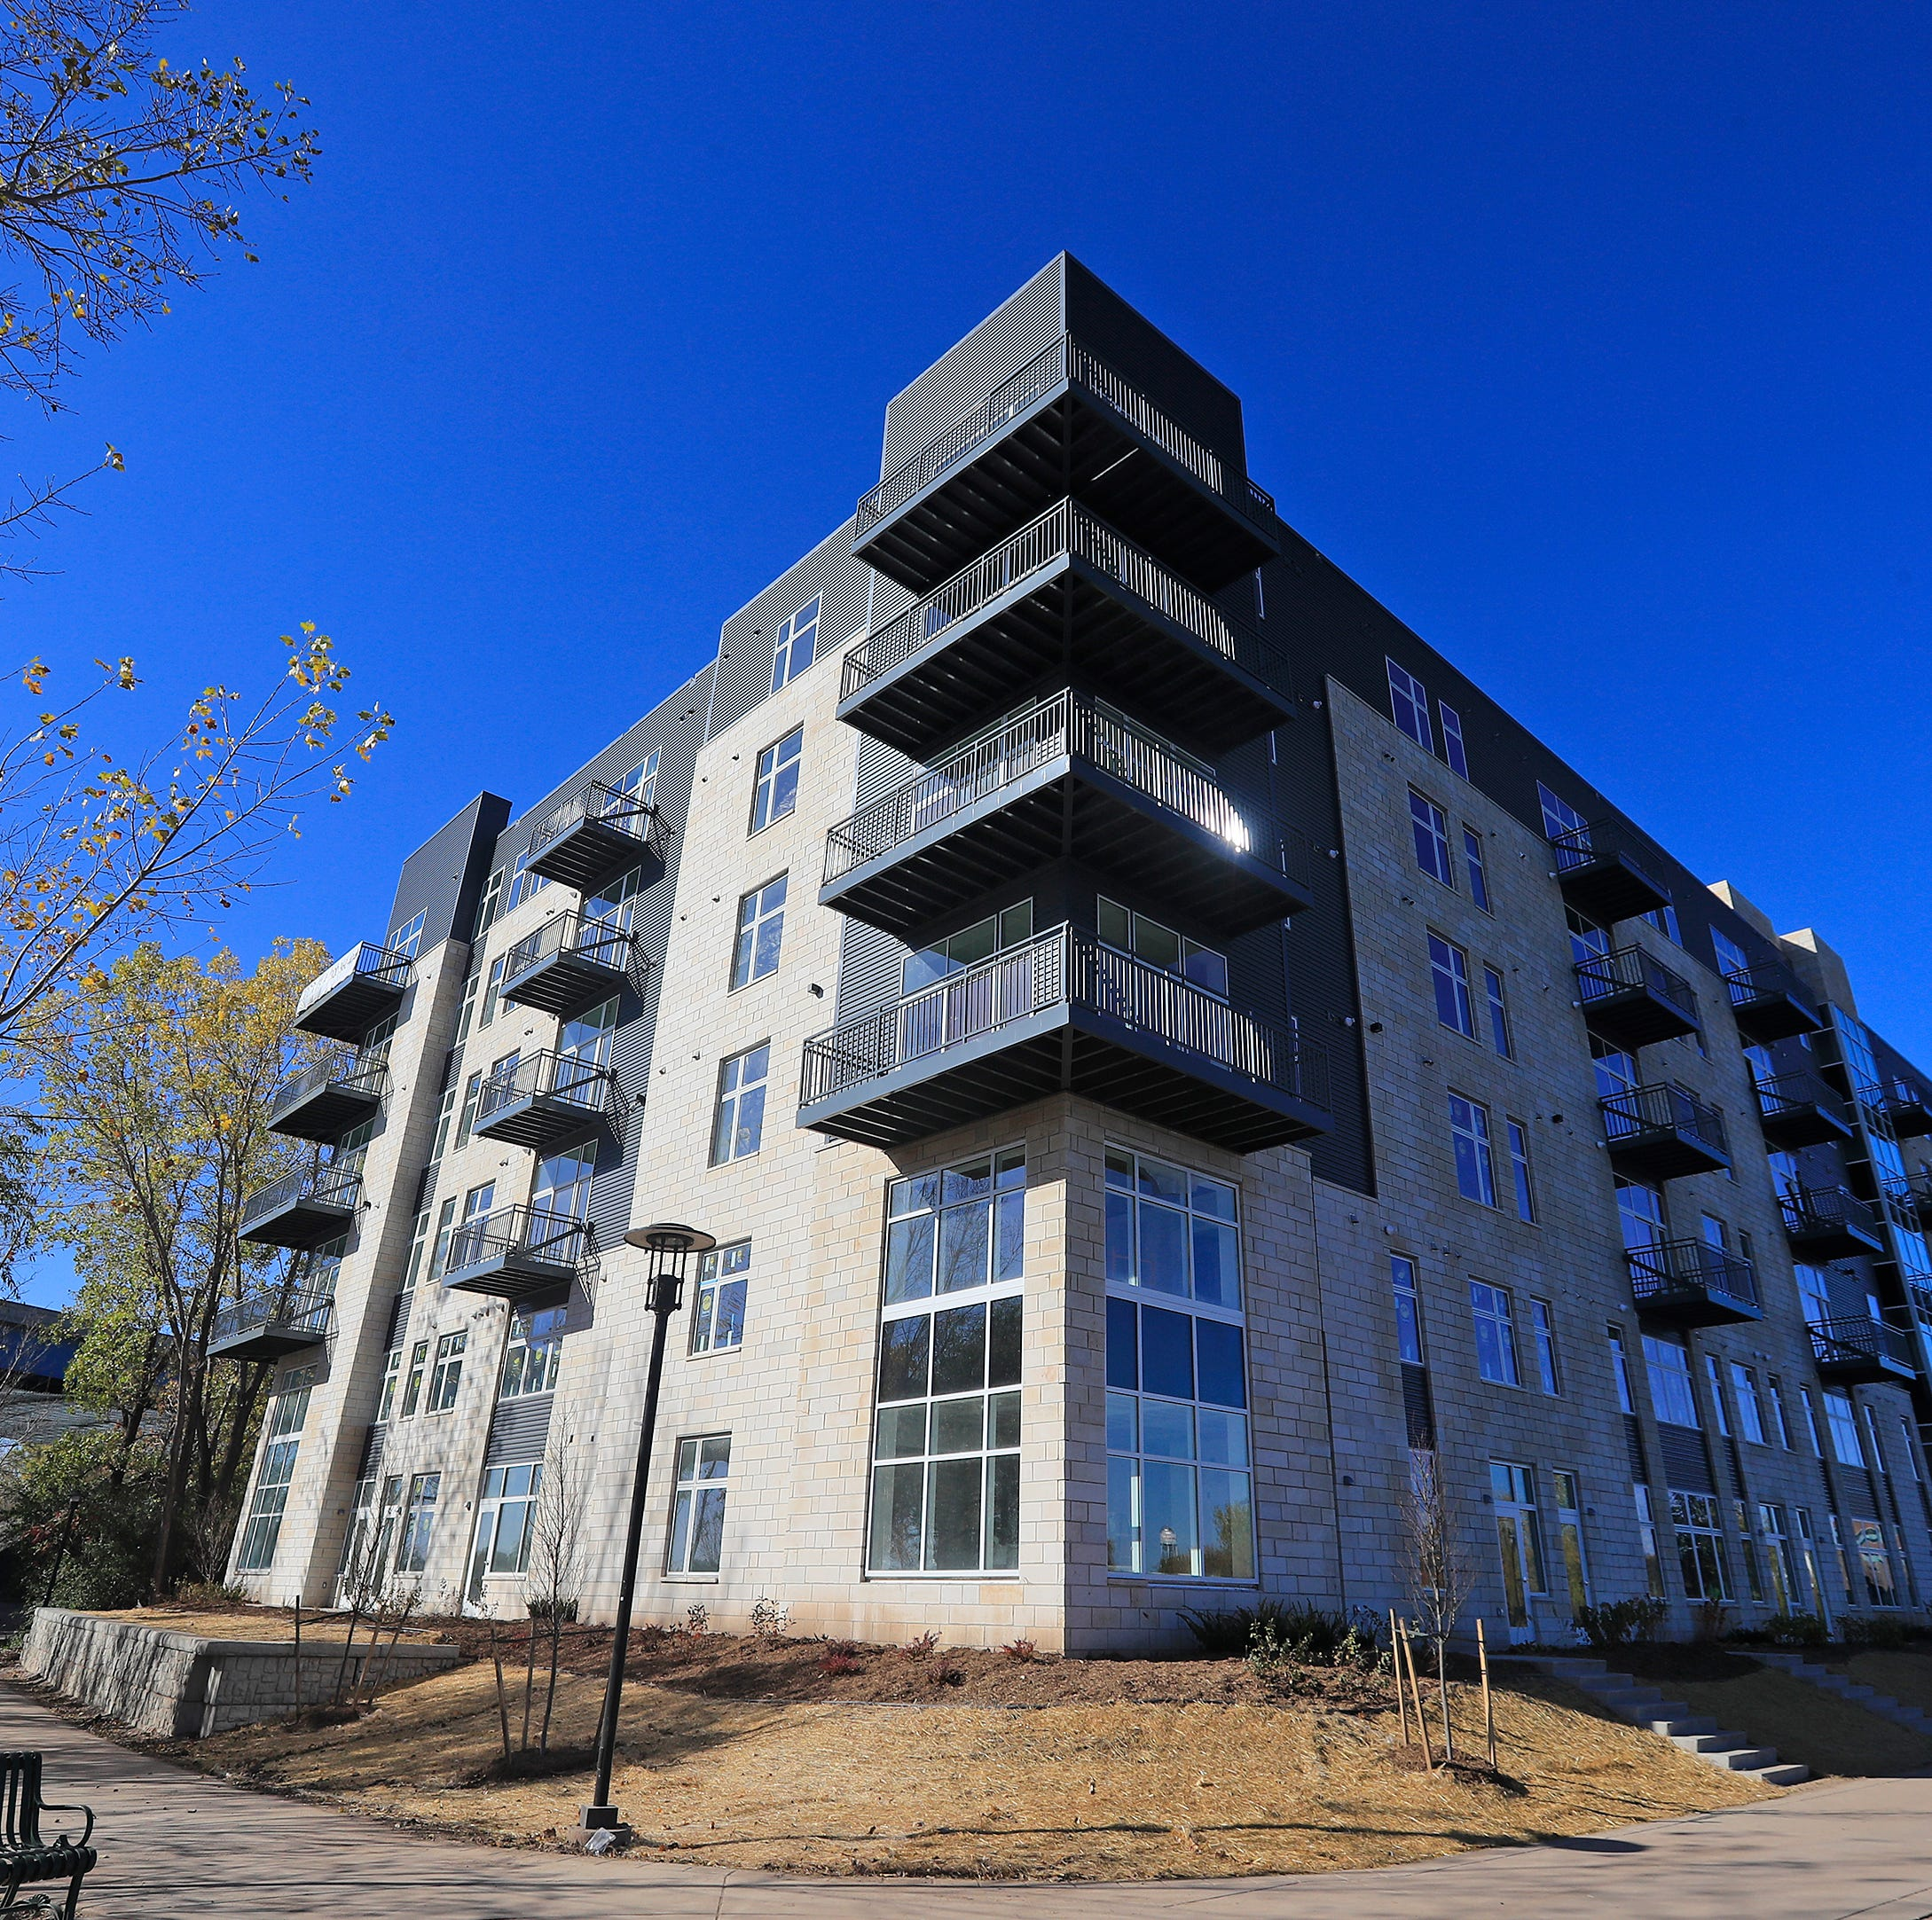 New apartments: Get a look inside Manseau Flats in Ashwaubenon | Streetwise